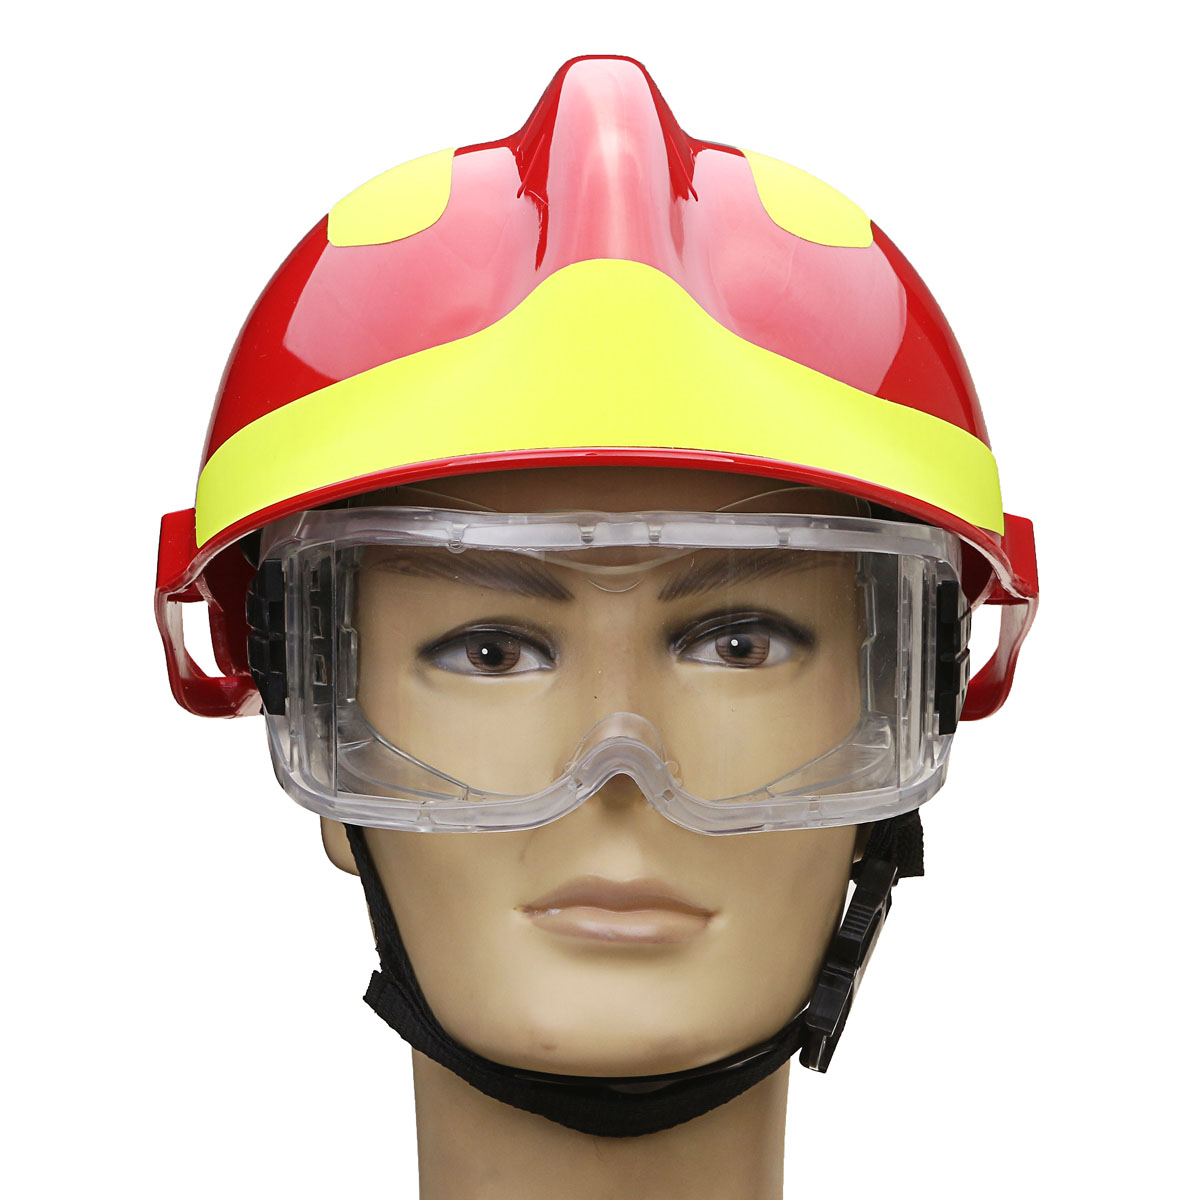 NEW Safurance Rescue Helmet Fire Fighter Protective Glasses Safety Protector Workplace Safety Fire Protection 53CM-63CM